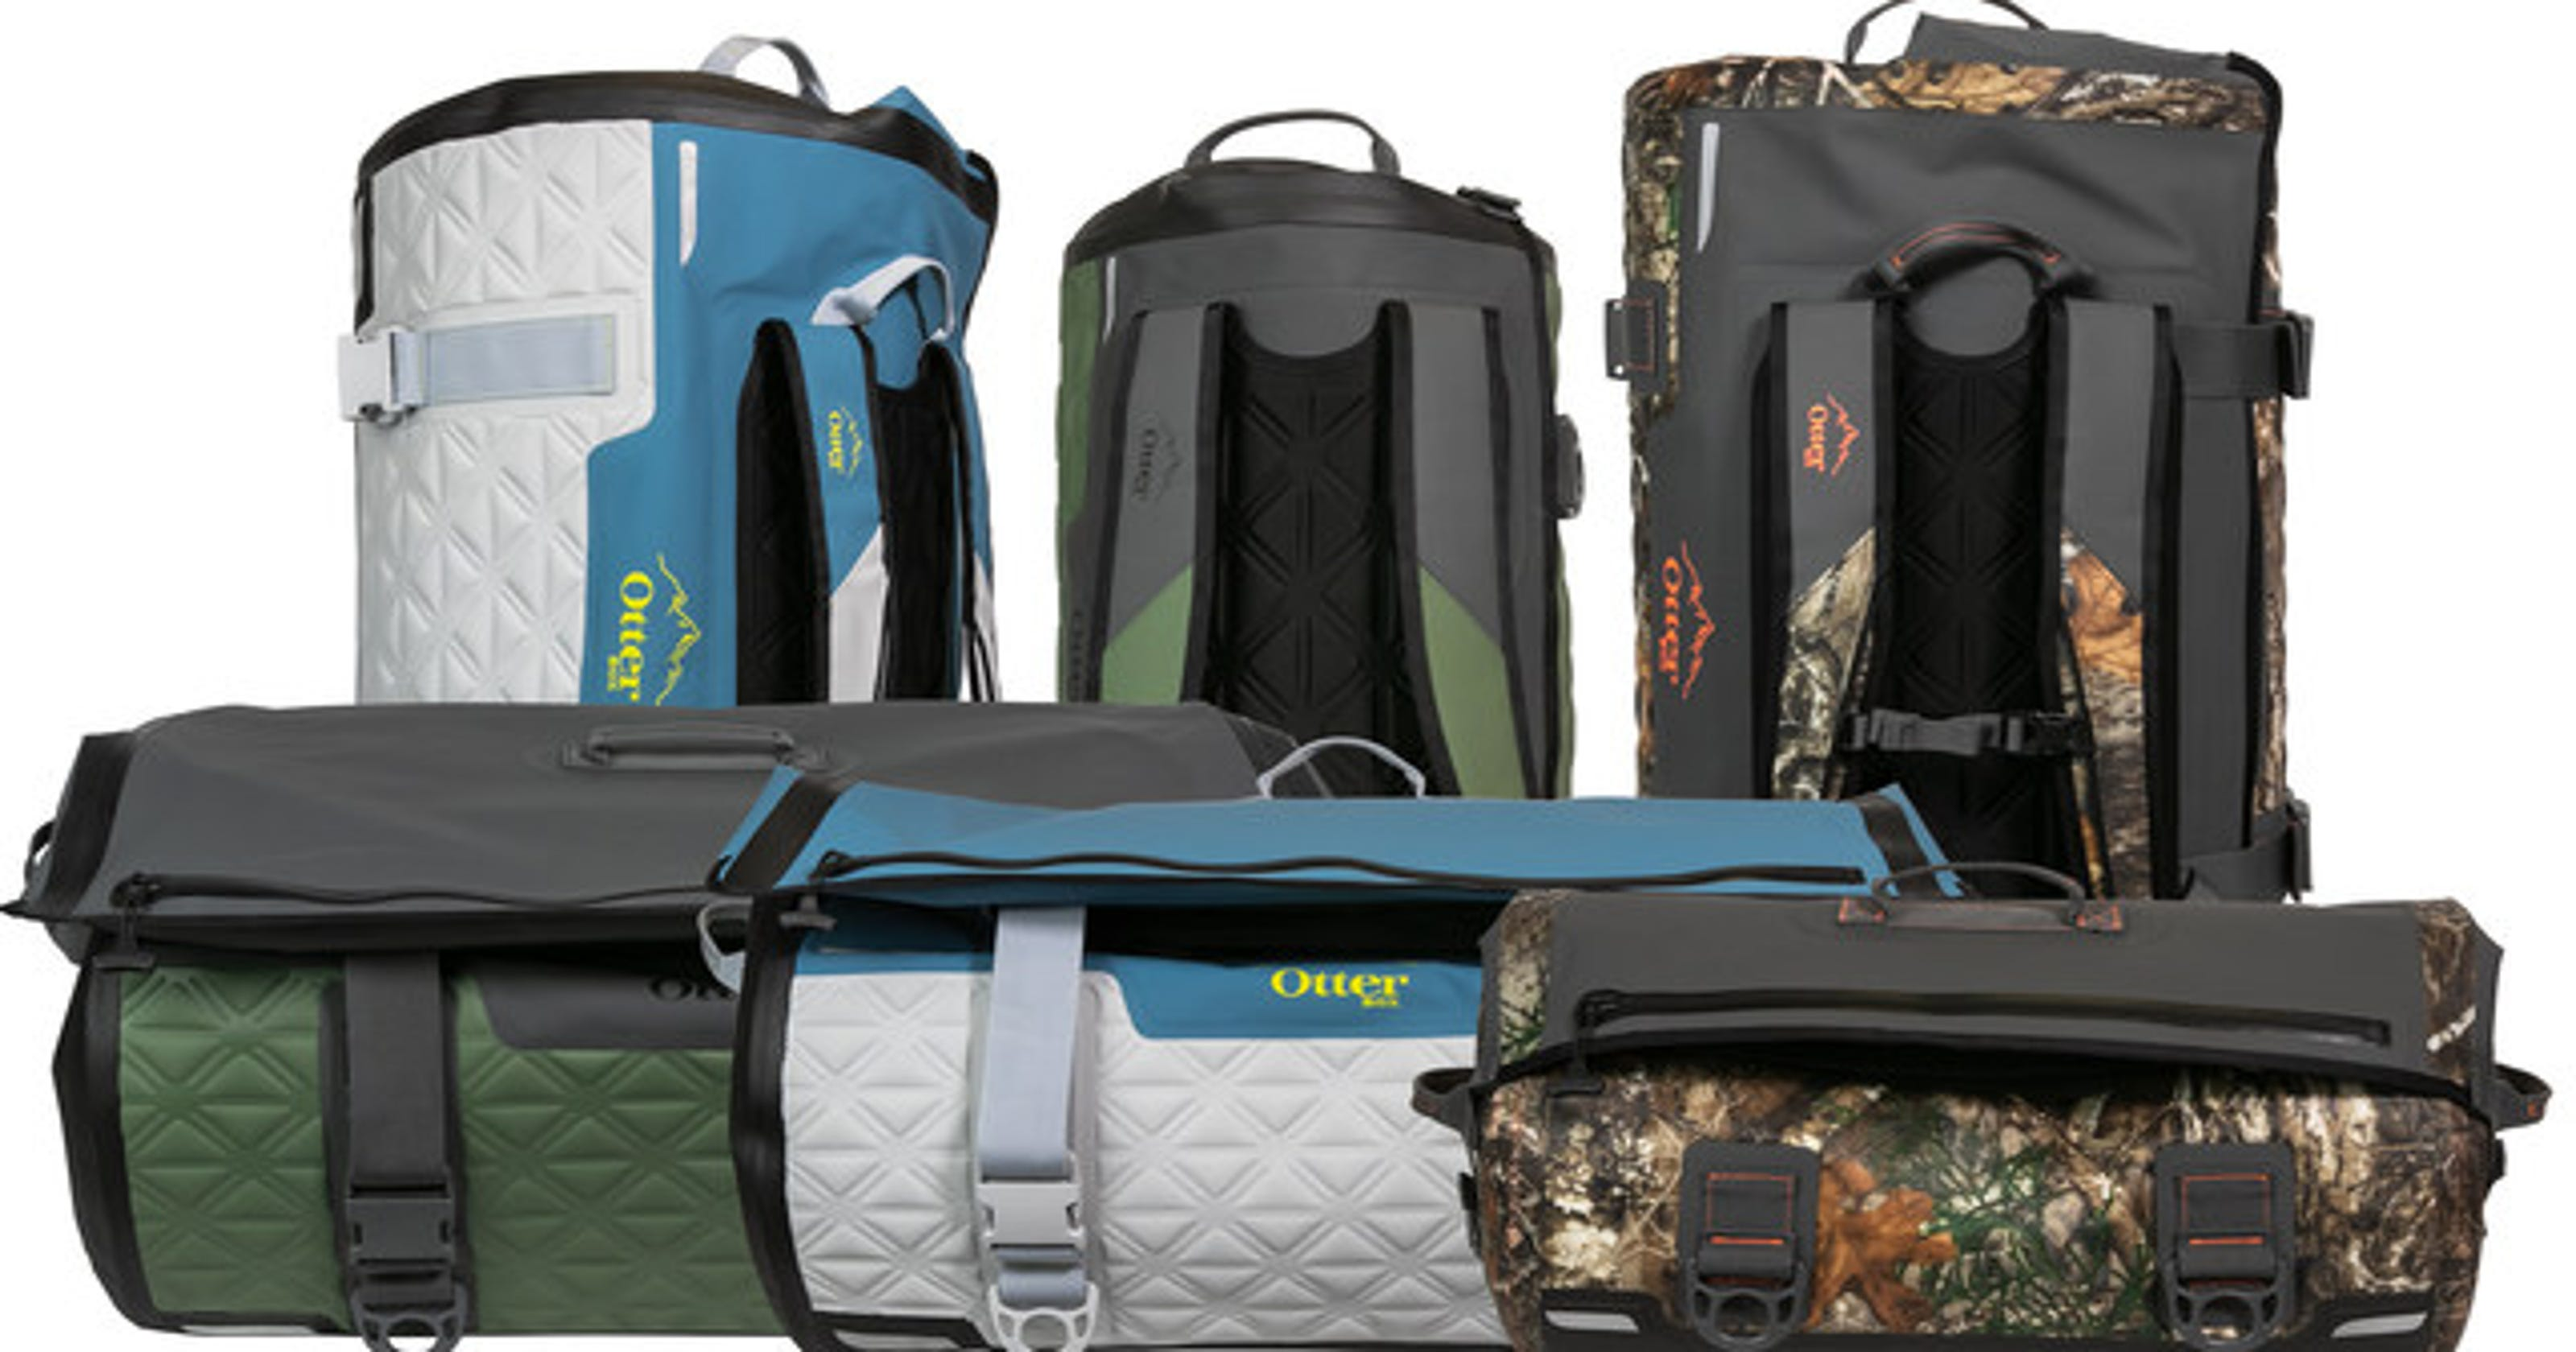 OtterBox adds waterproof duffel bag to its line of outdoor products ab0fe7d9baf3e